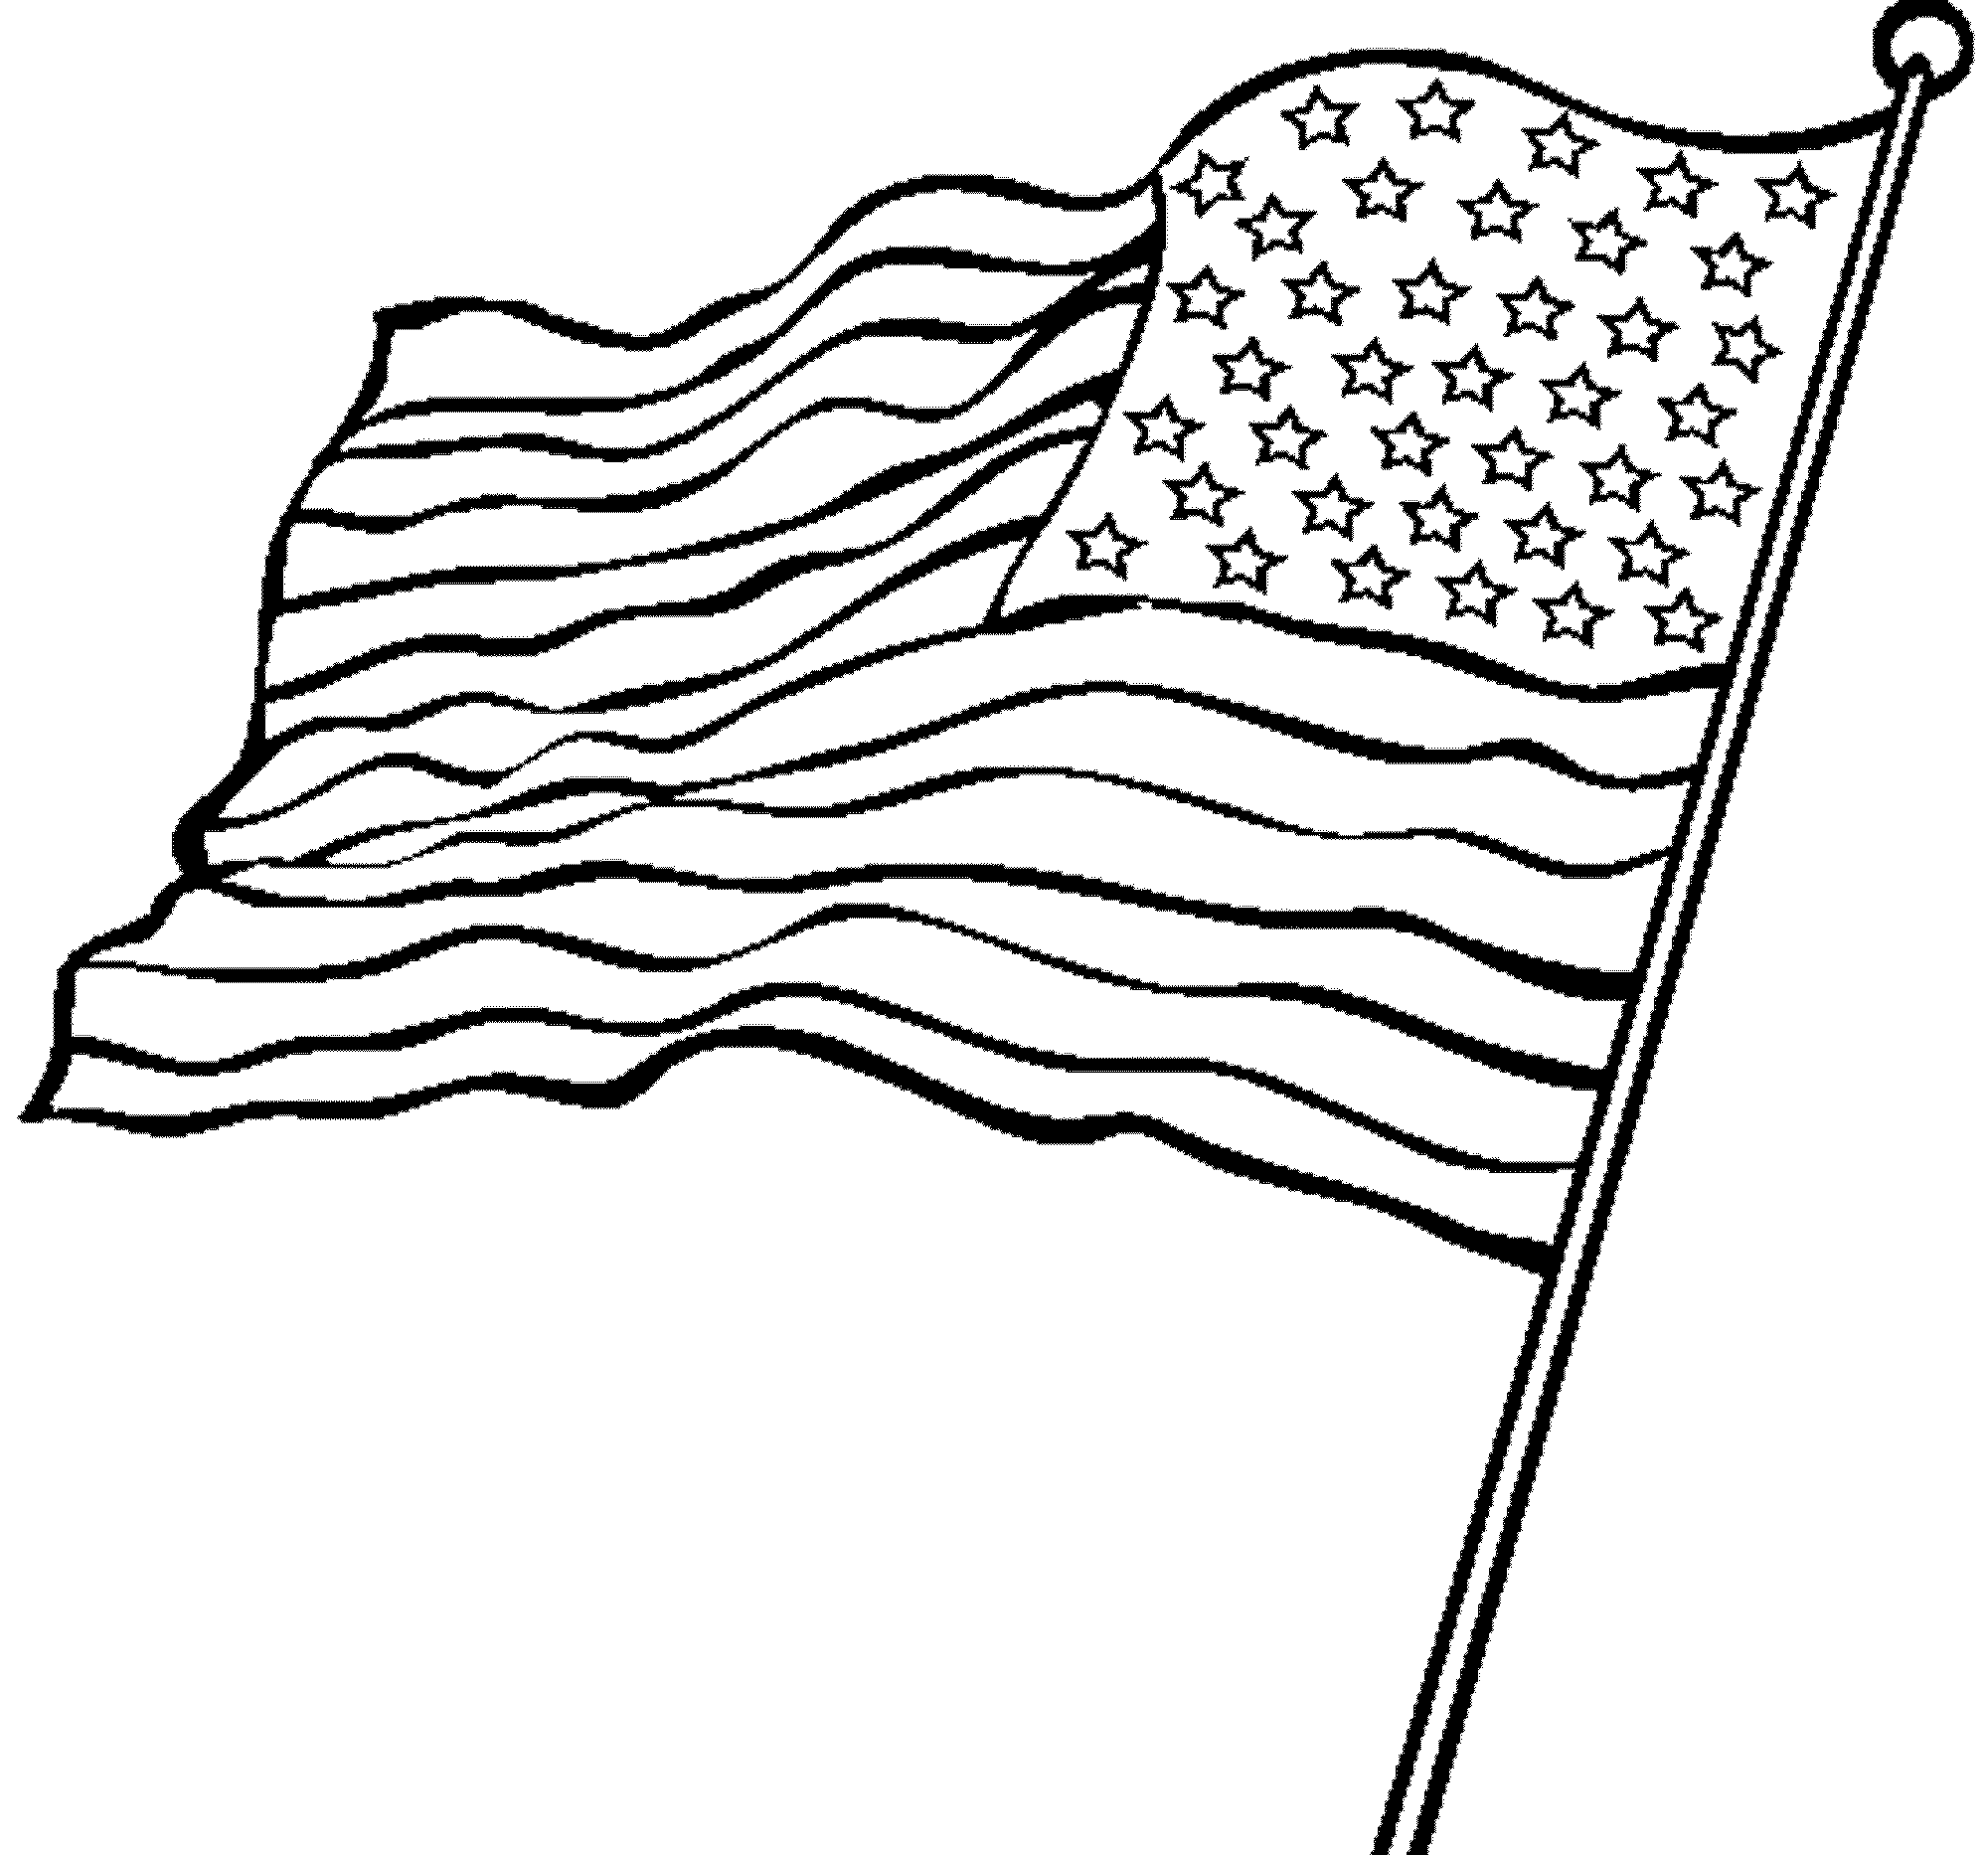 us flag coloring page get this american flag coloring pages kids printable 36481 us flag coloring page